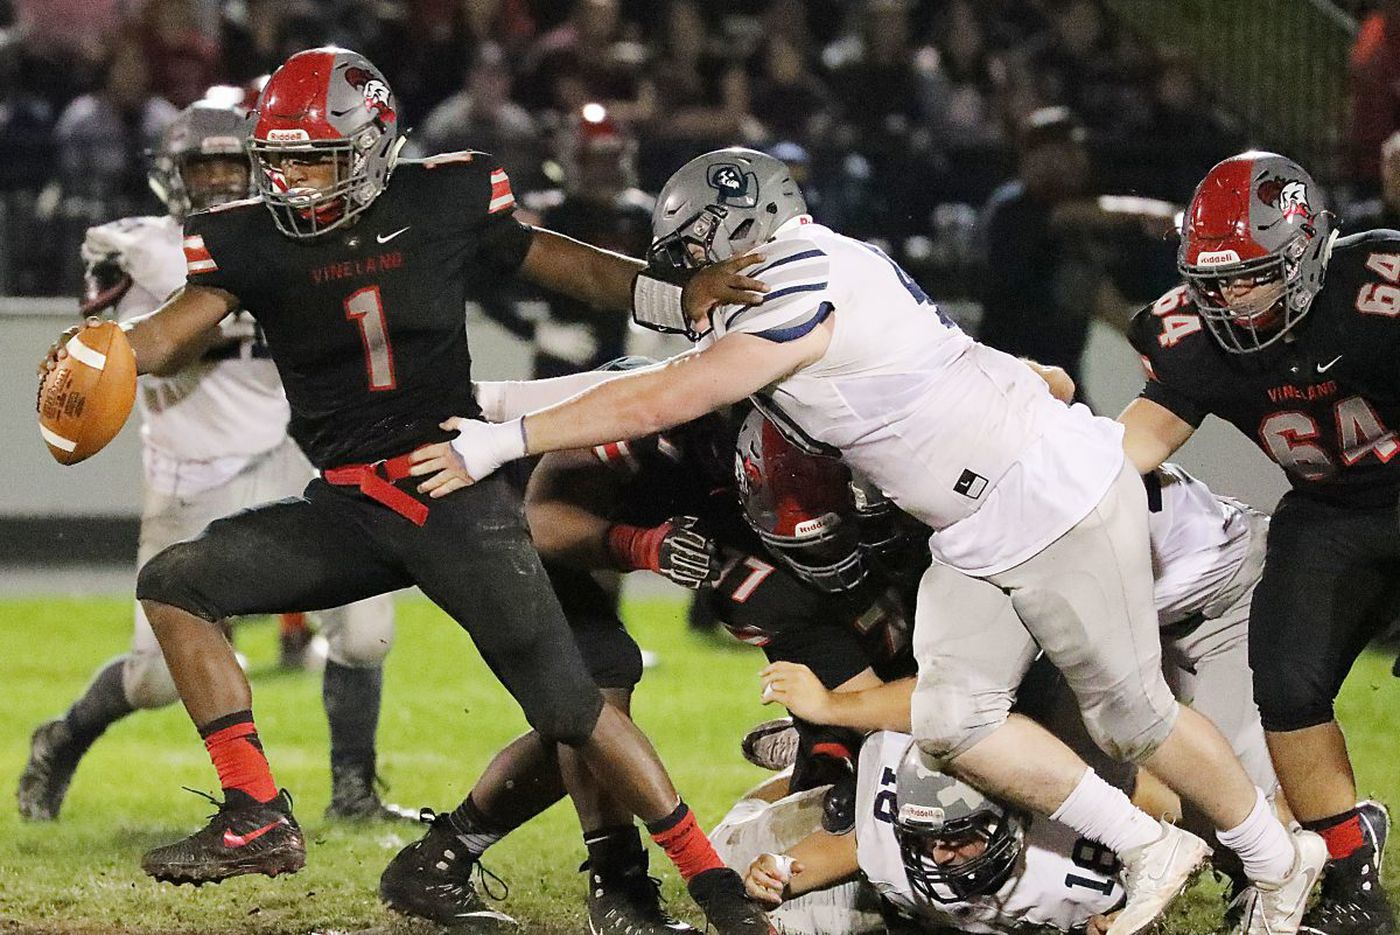 Vineland's Isaih Pacheco and Nihym Anderson head to Big Ten football teams